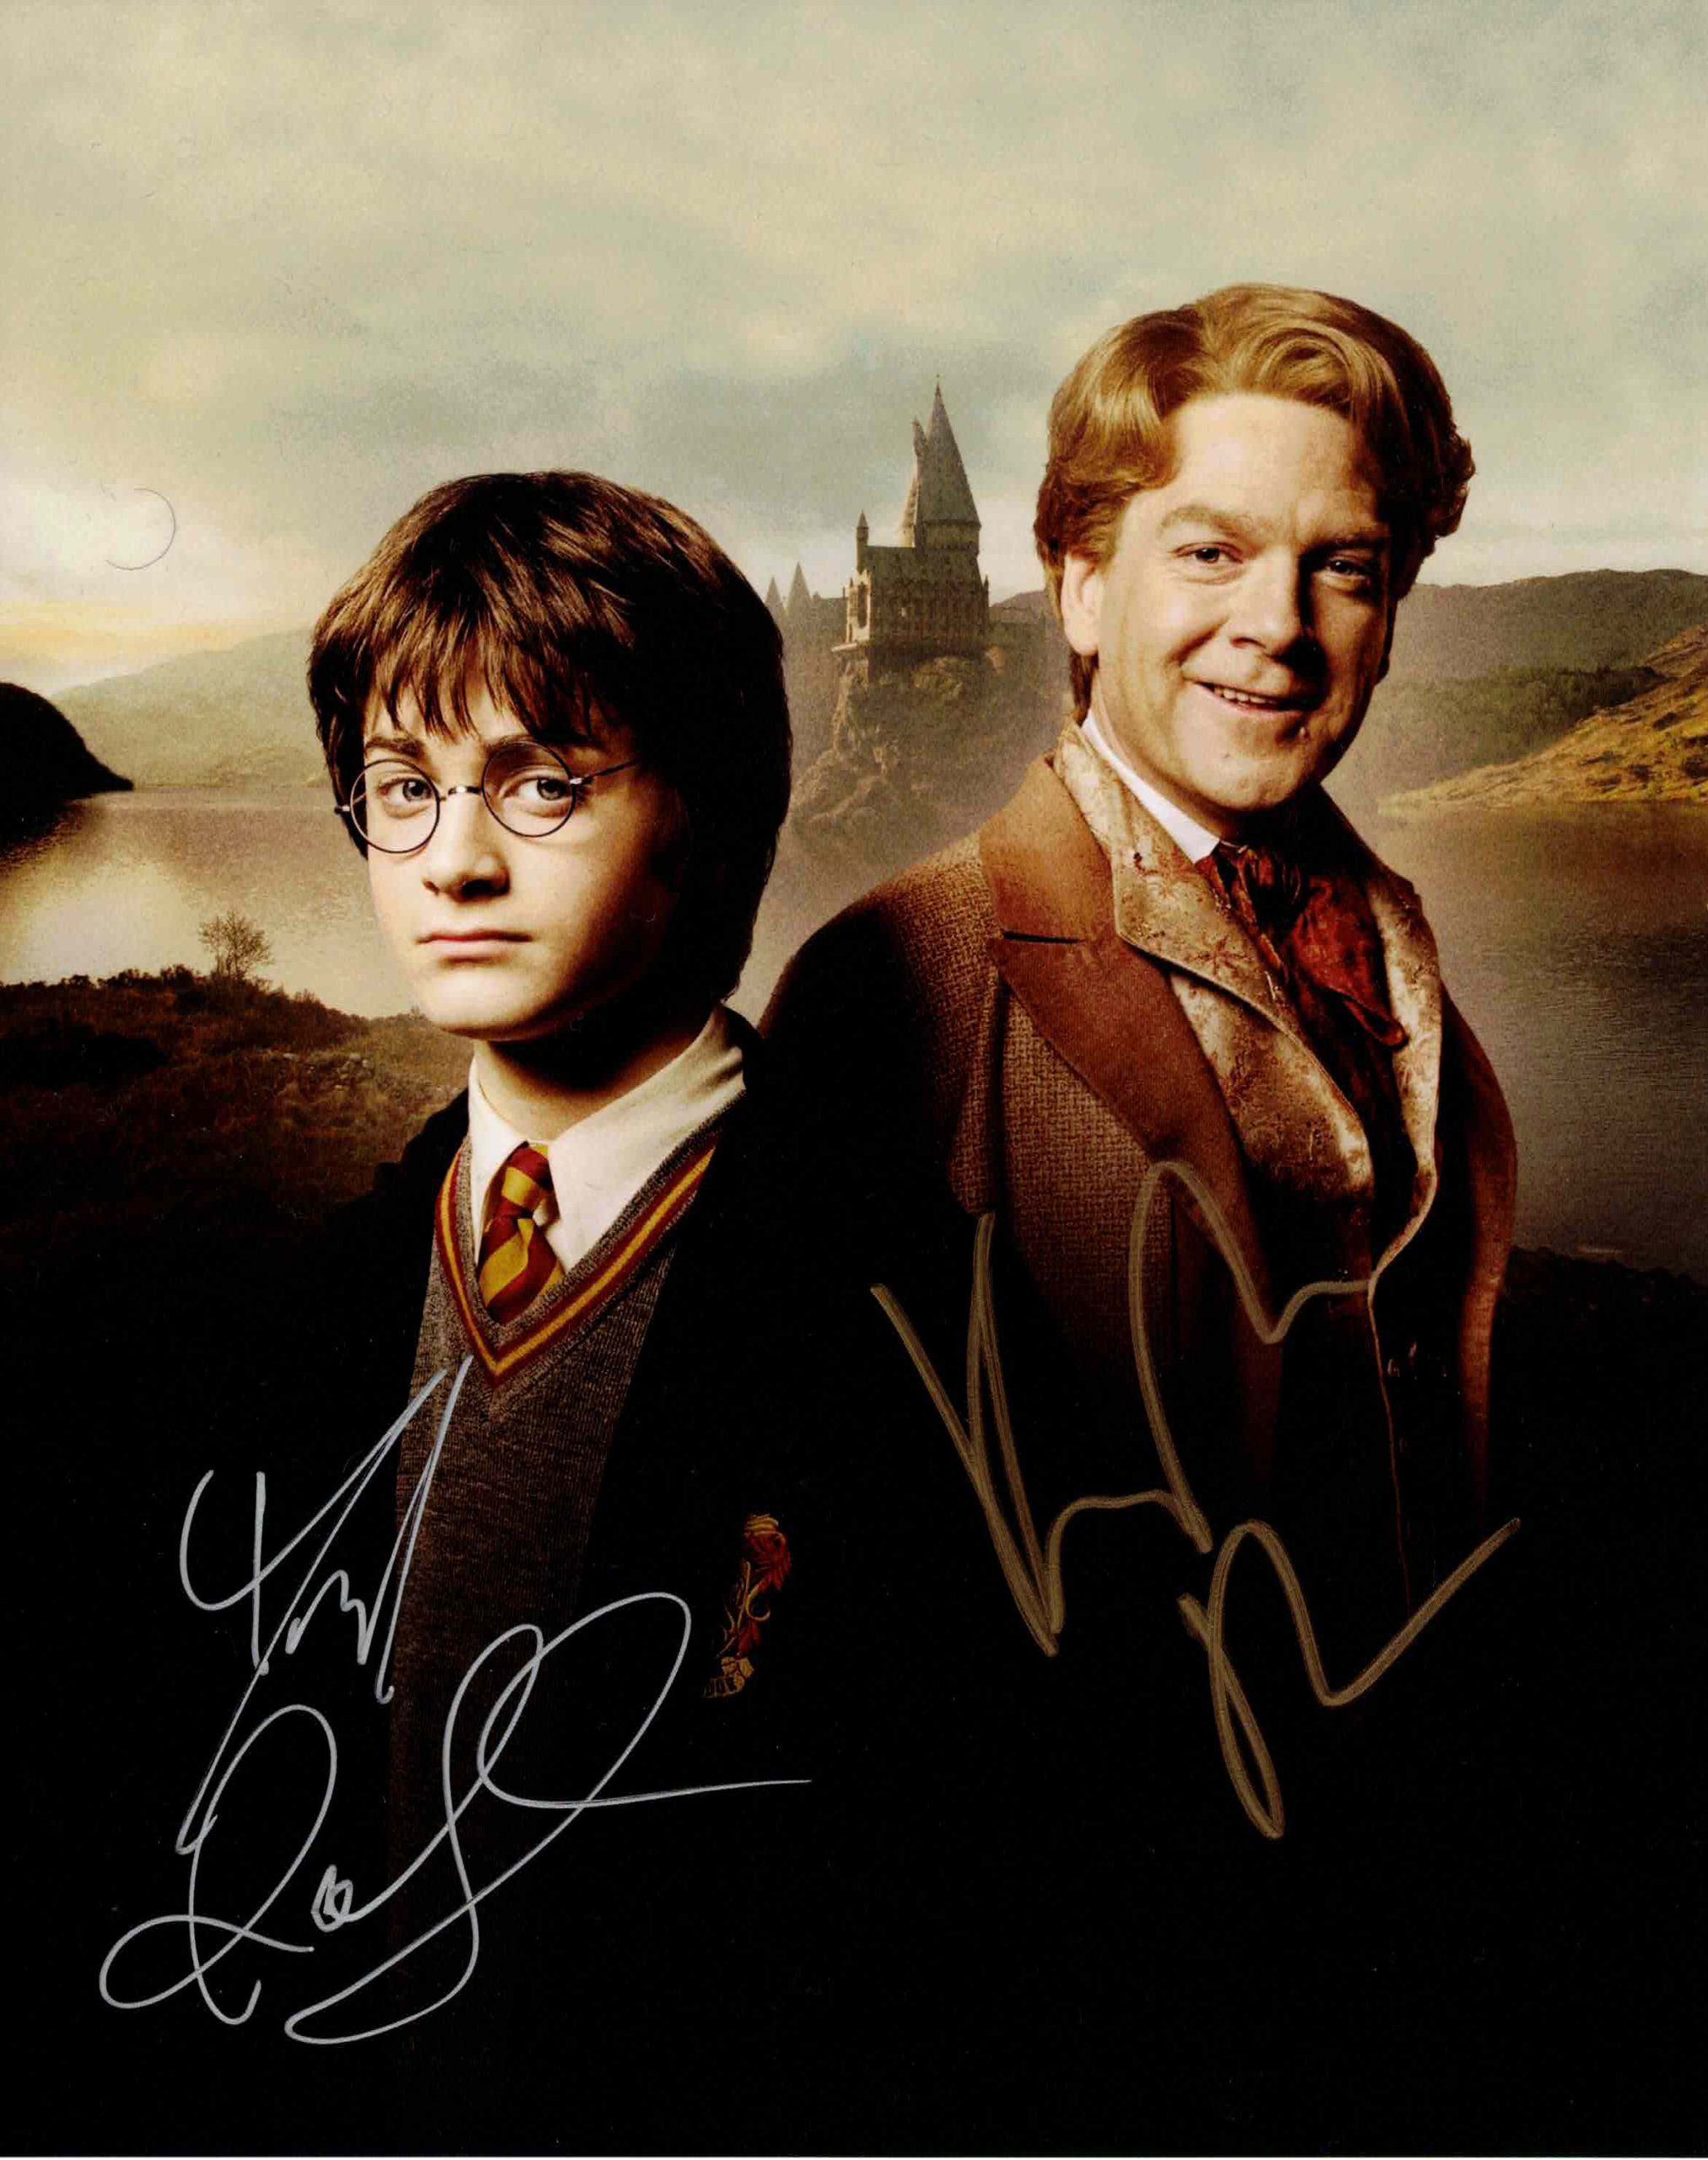 Daniel Radcliffe & Kenneth Branagh / Harry Potter - autogram